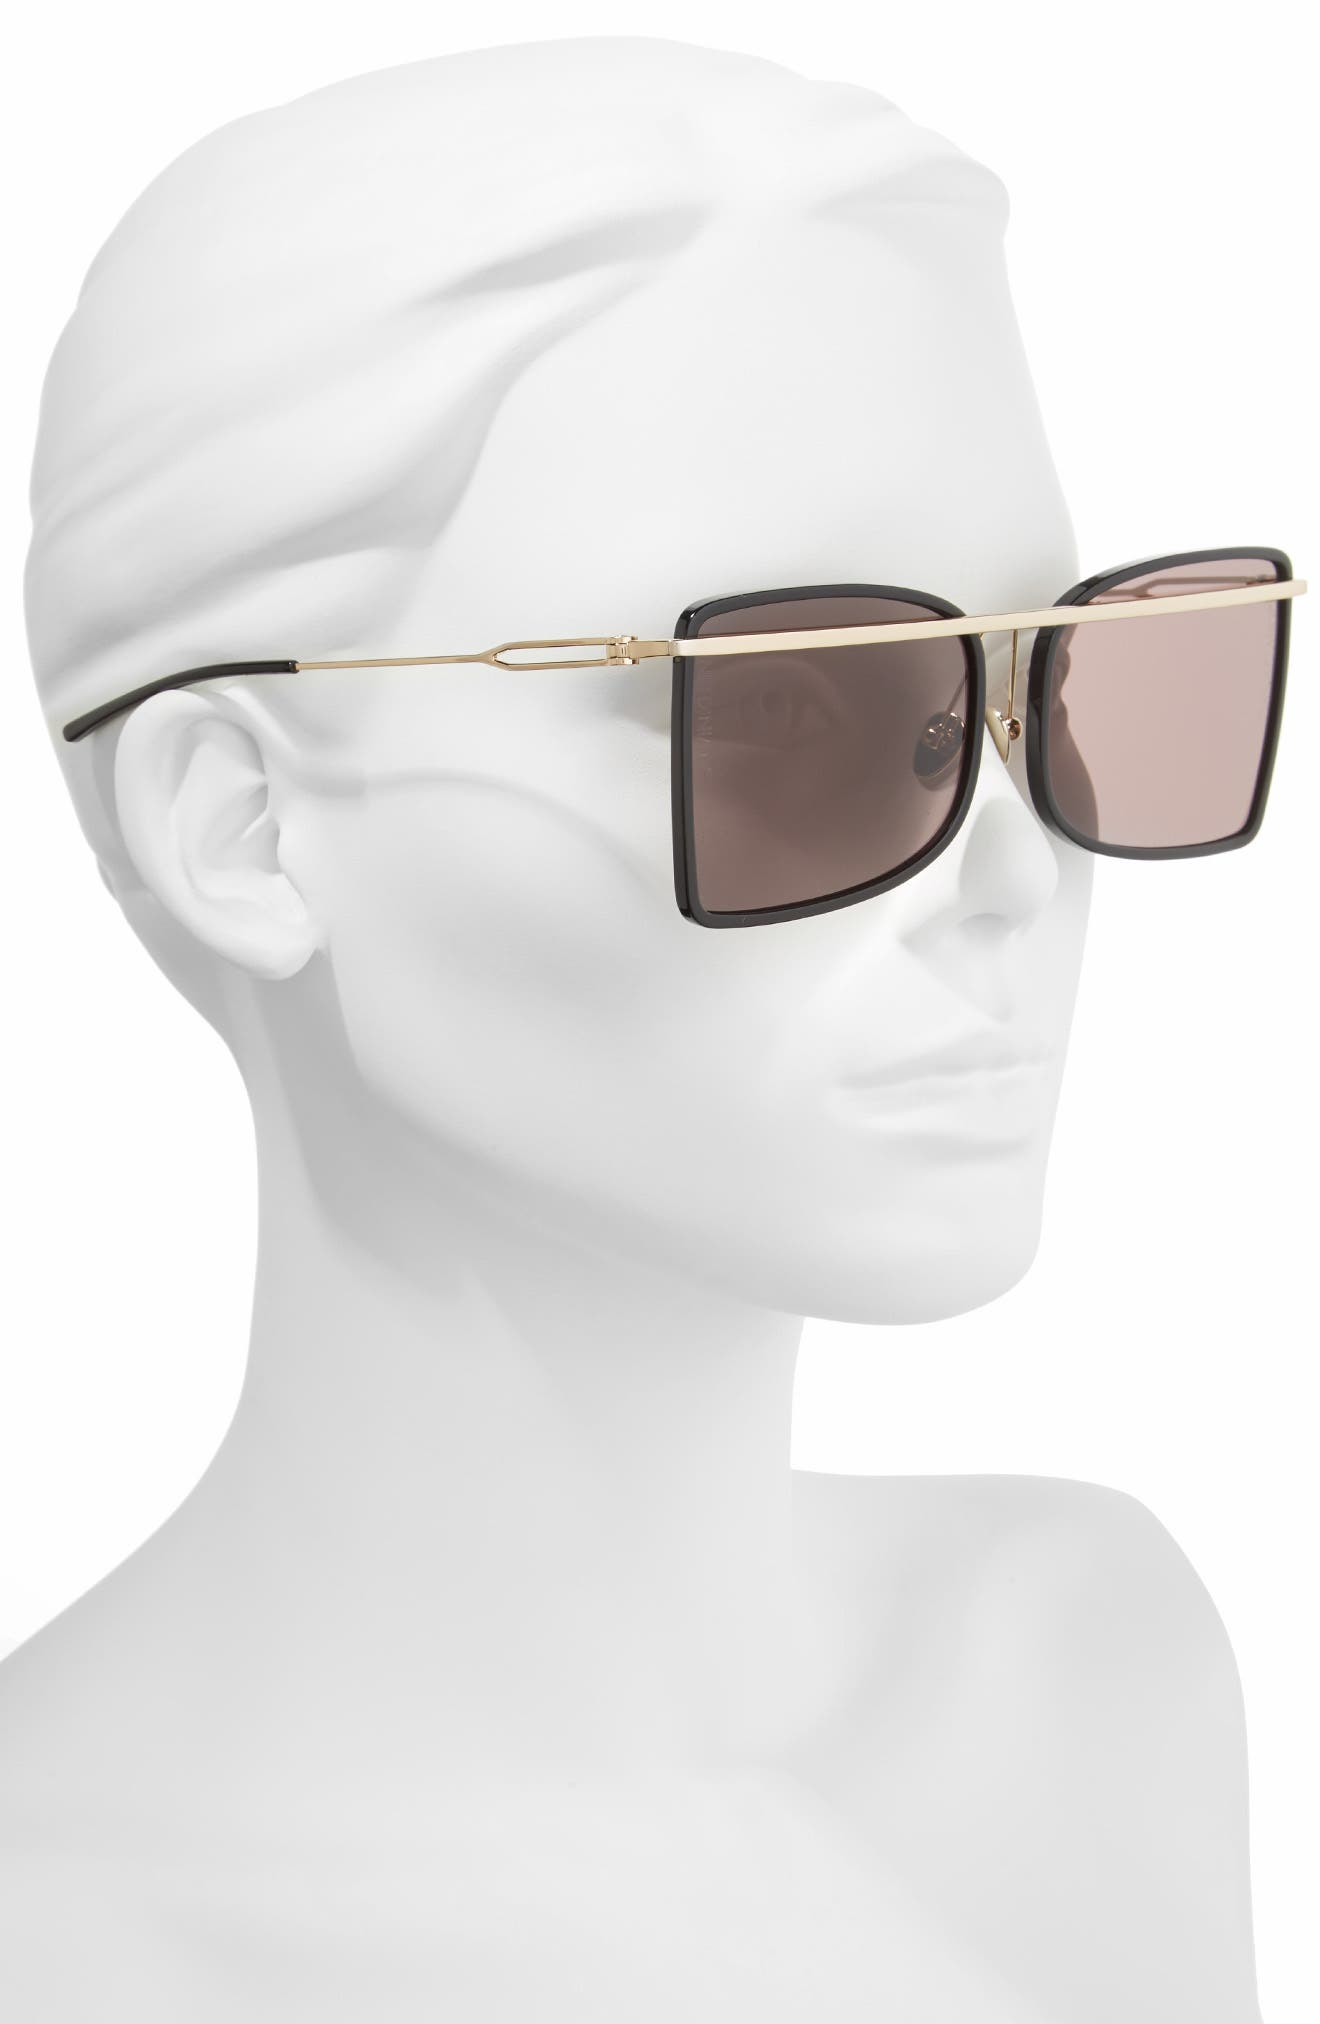 Alternate Image 2  - CALVIN KLEIN 205W39NYC 60mm Butterfly Sunglasses